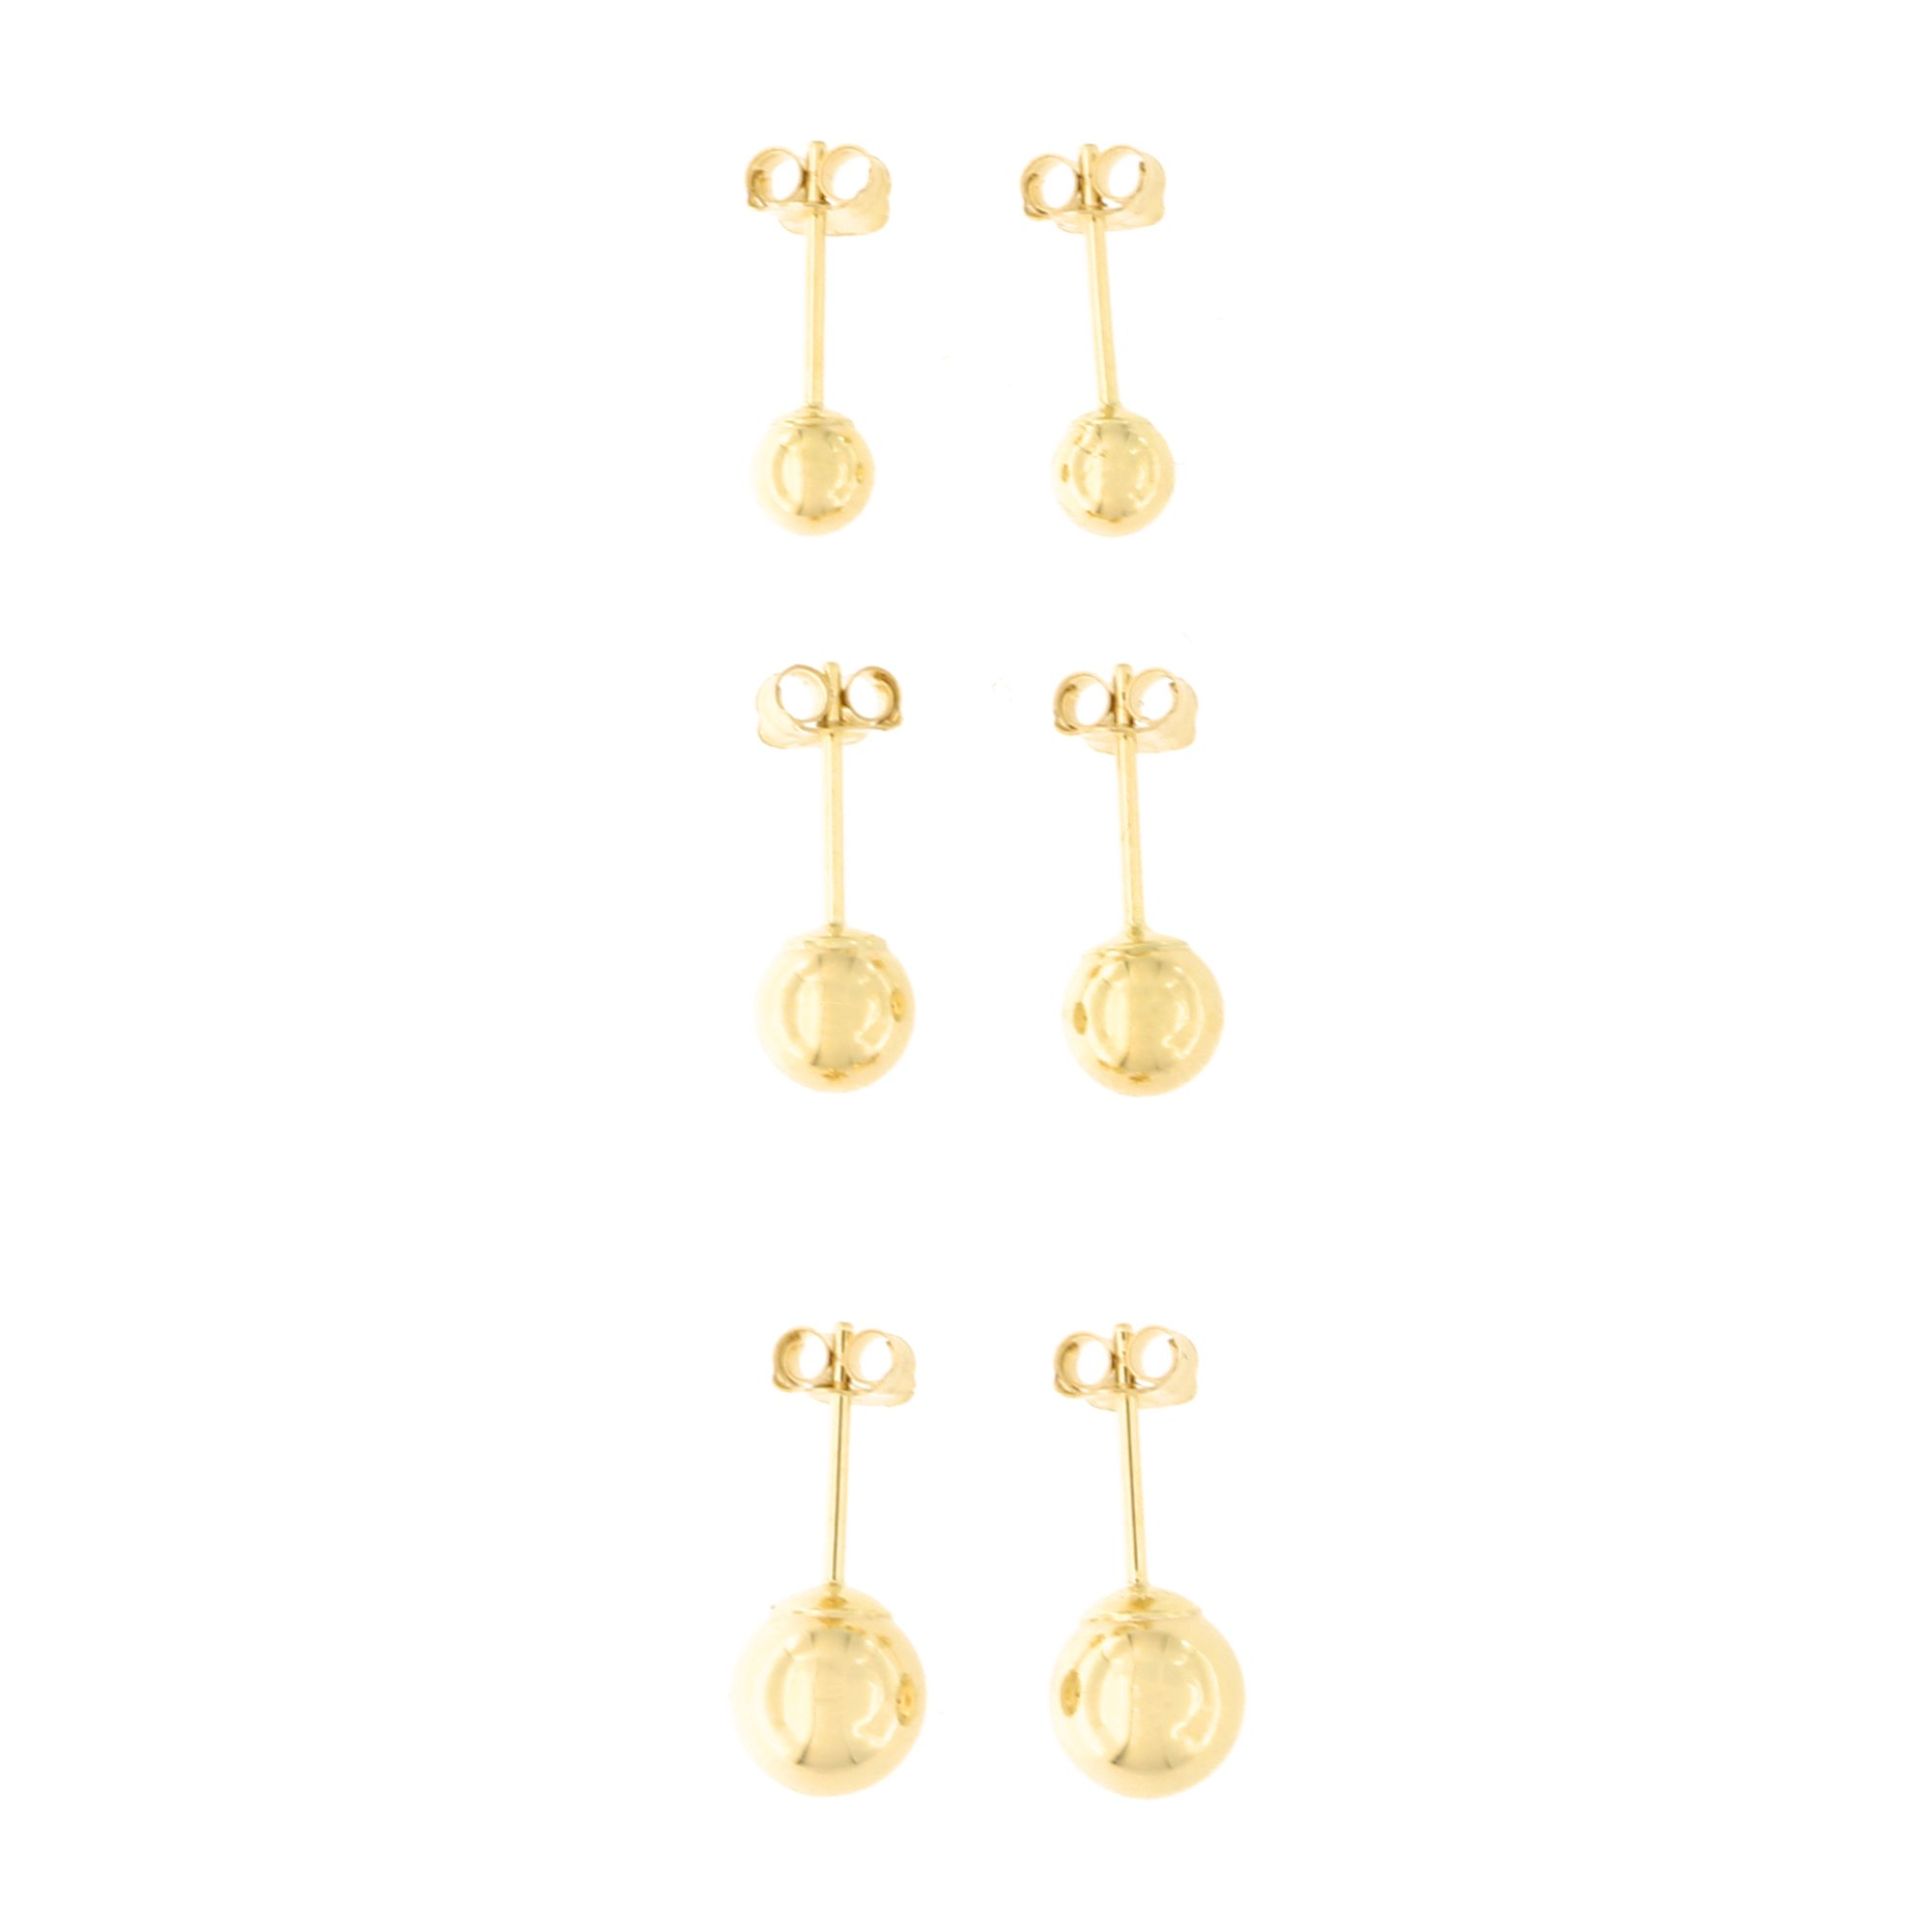 14k Yellow Gold 4mm, 5mm and 6mm Ball Stud Earrings Set